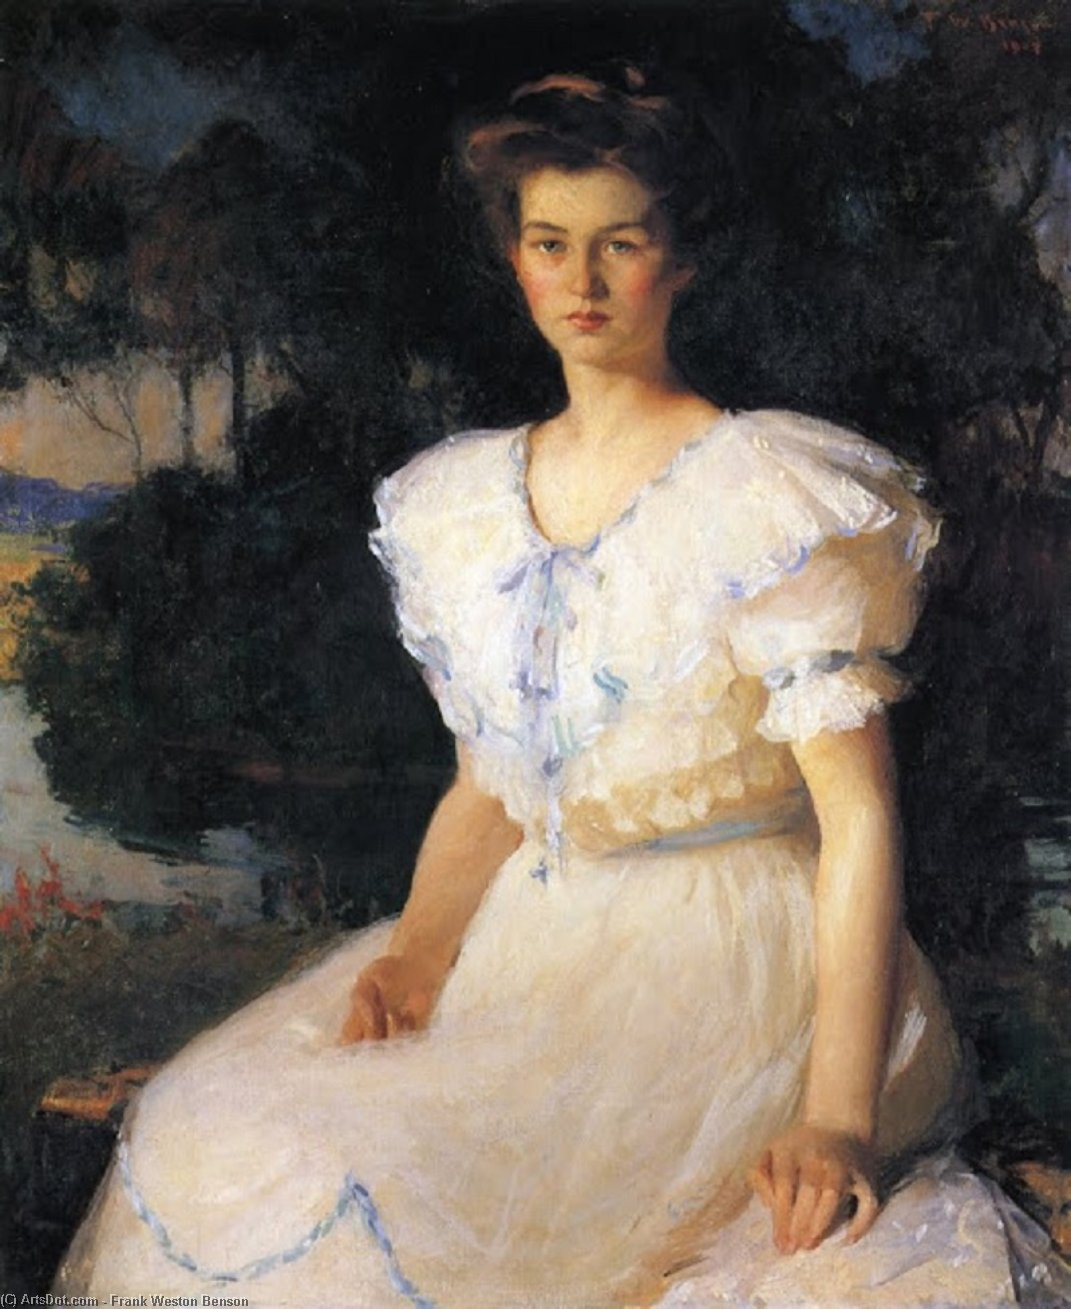 Дороти Линкольн, Масло по Frank Weston Benson (1862-1951, United States)